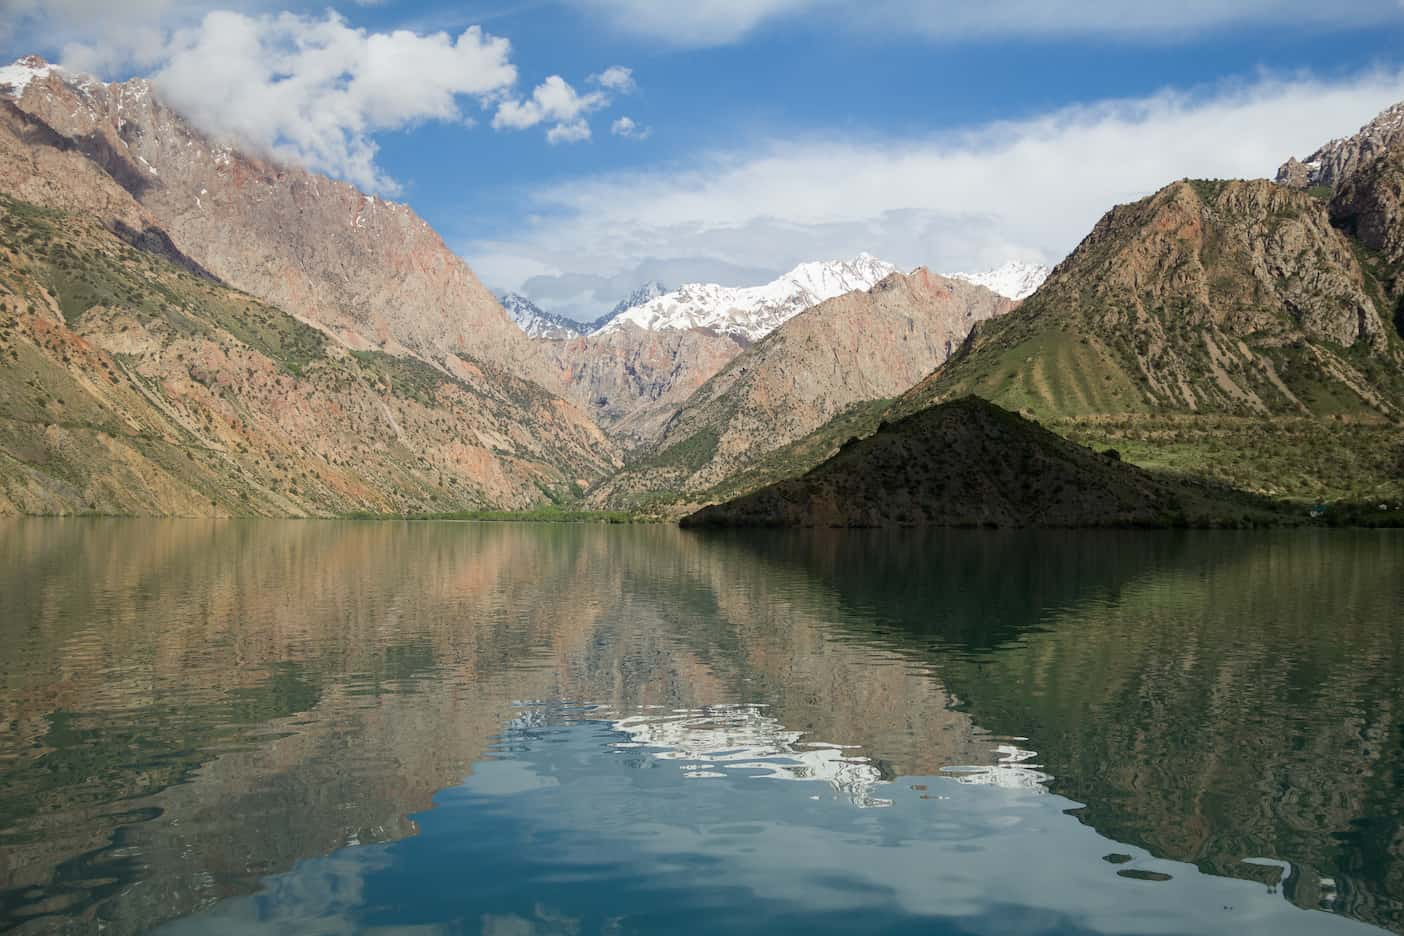 Iskanderkul Lake surrounded by mountains in Tajikistan